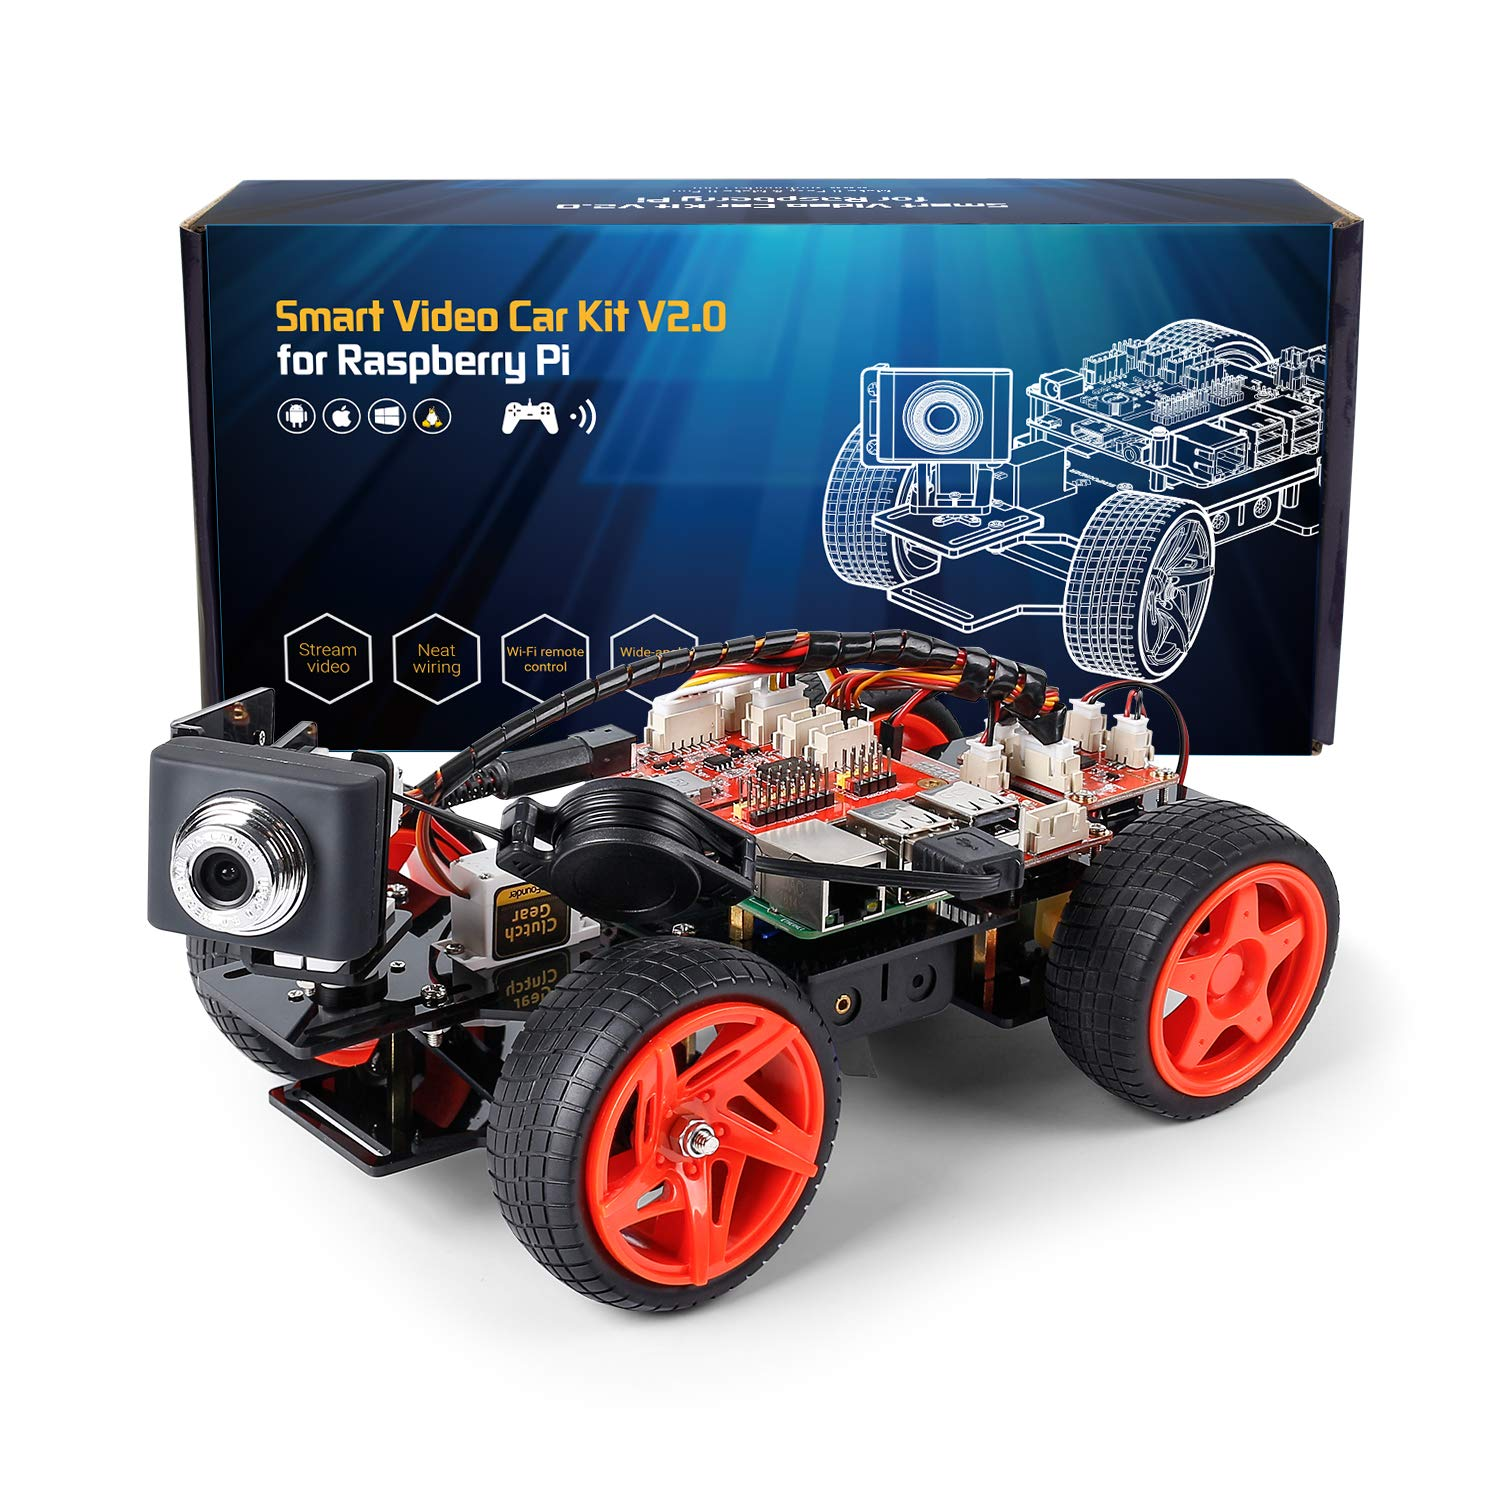 SunFounder Smart Video Car Kit V2 0 Raspberry Pi 4 Model B 3B+ 3B 2B  Graphical Visual Programming Language Remote Control by UI on Windows Mac  Web